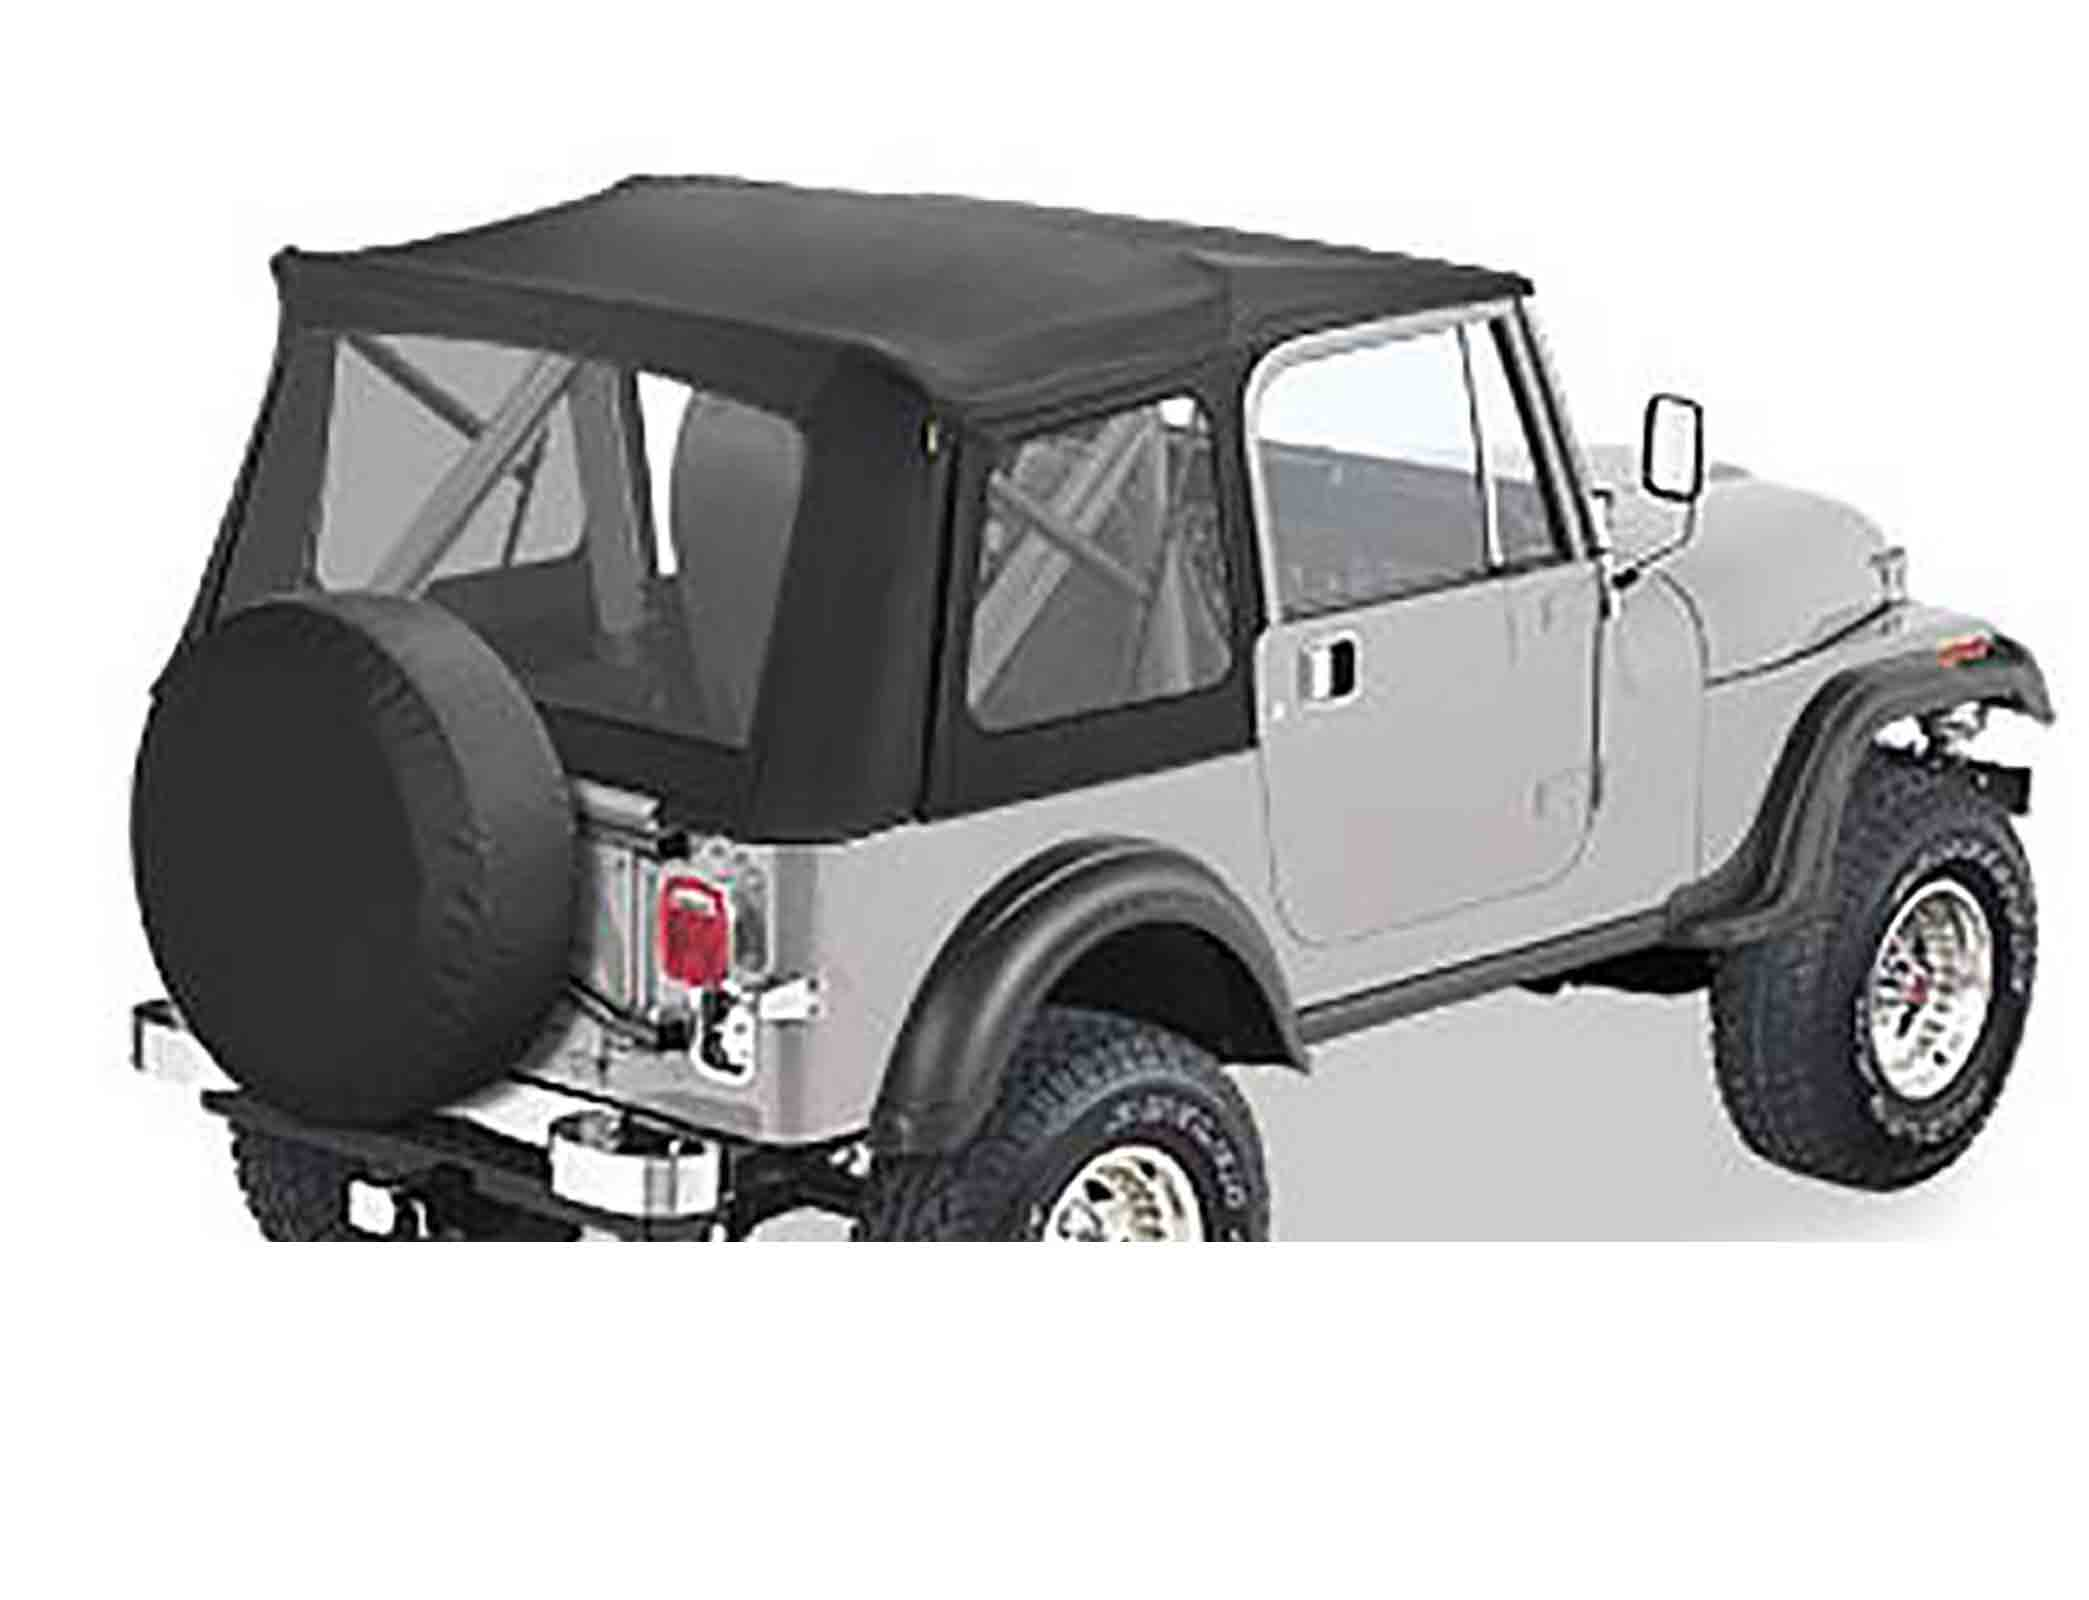 Supertop jeep cj7 76 86 wrangler yj 87 95 softtop soft top capottina senza porte softtop soft top cap